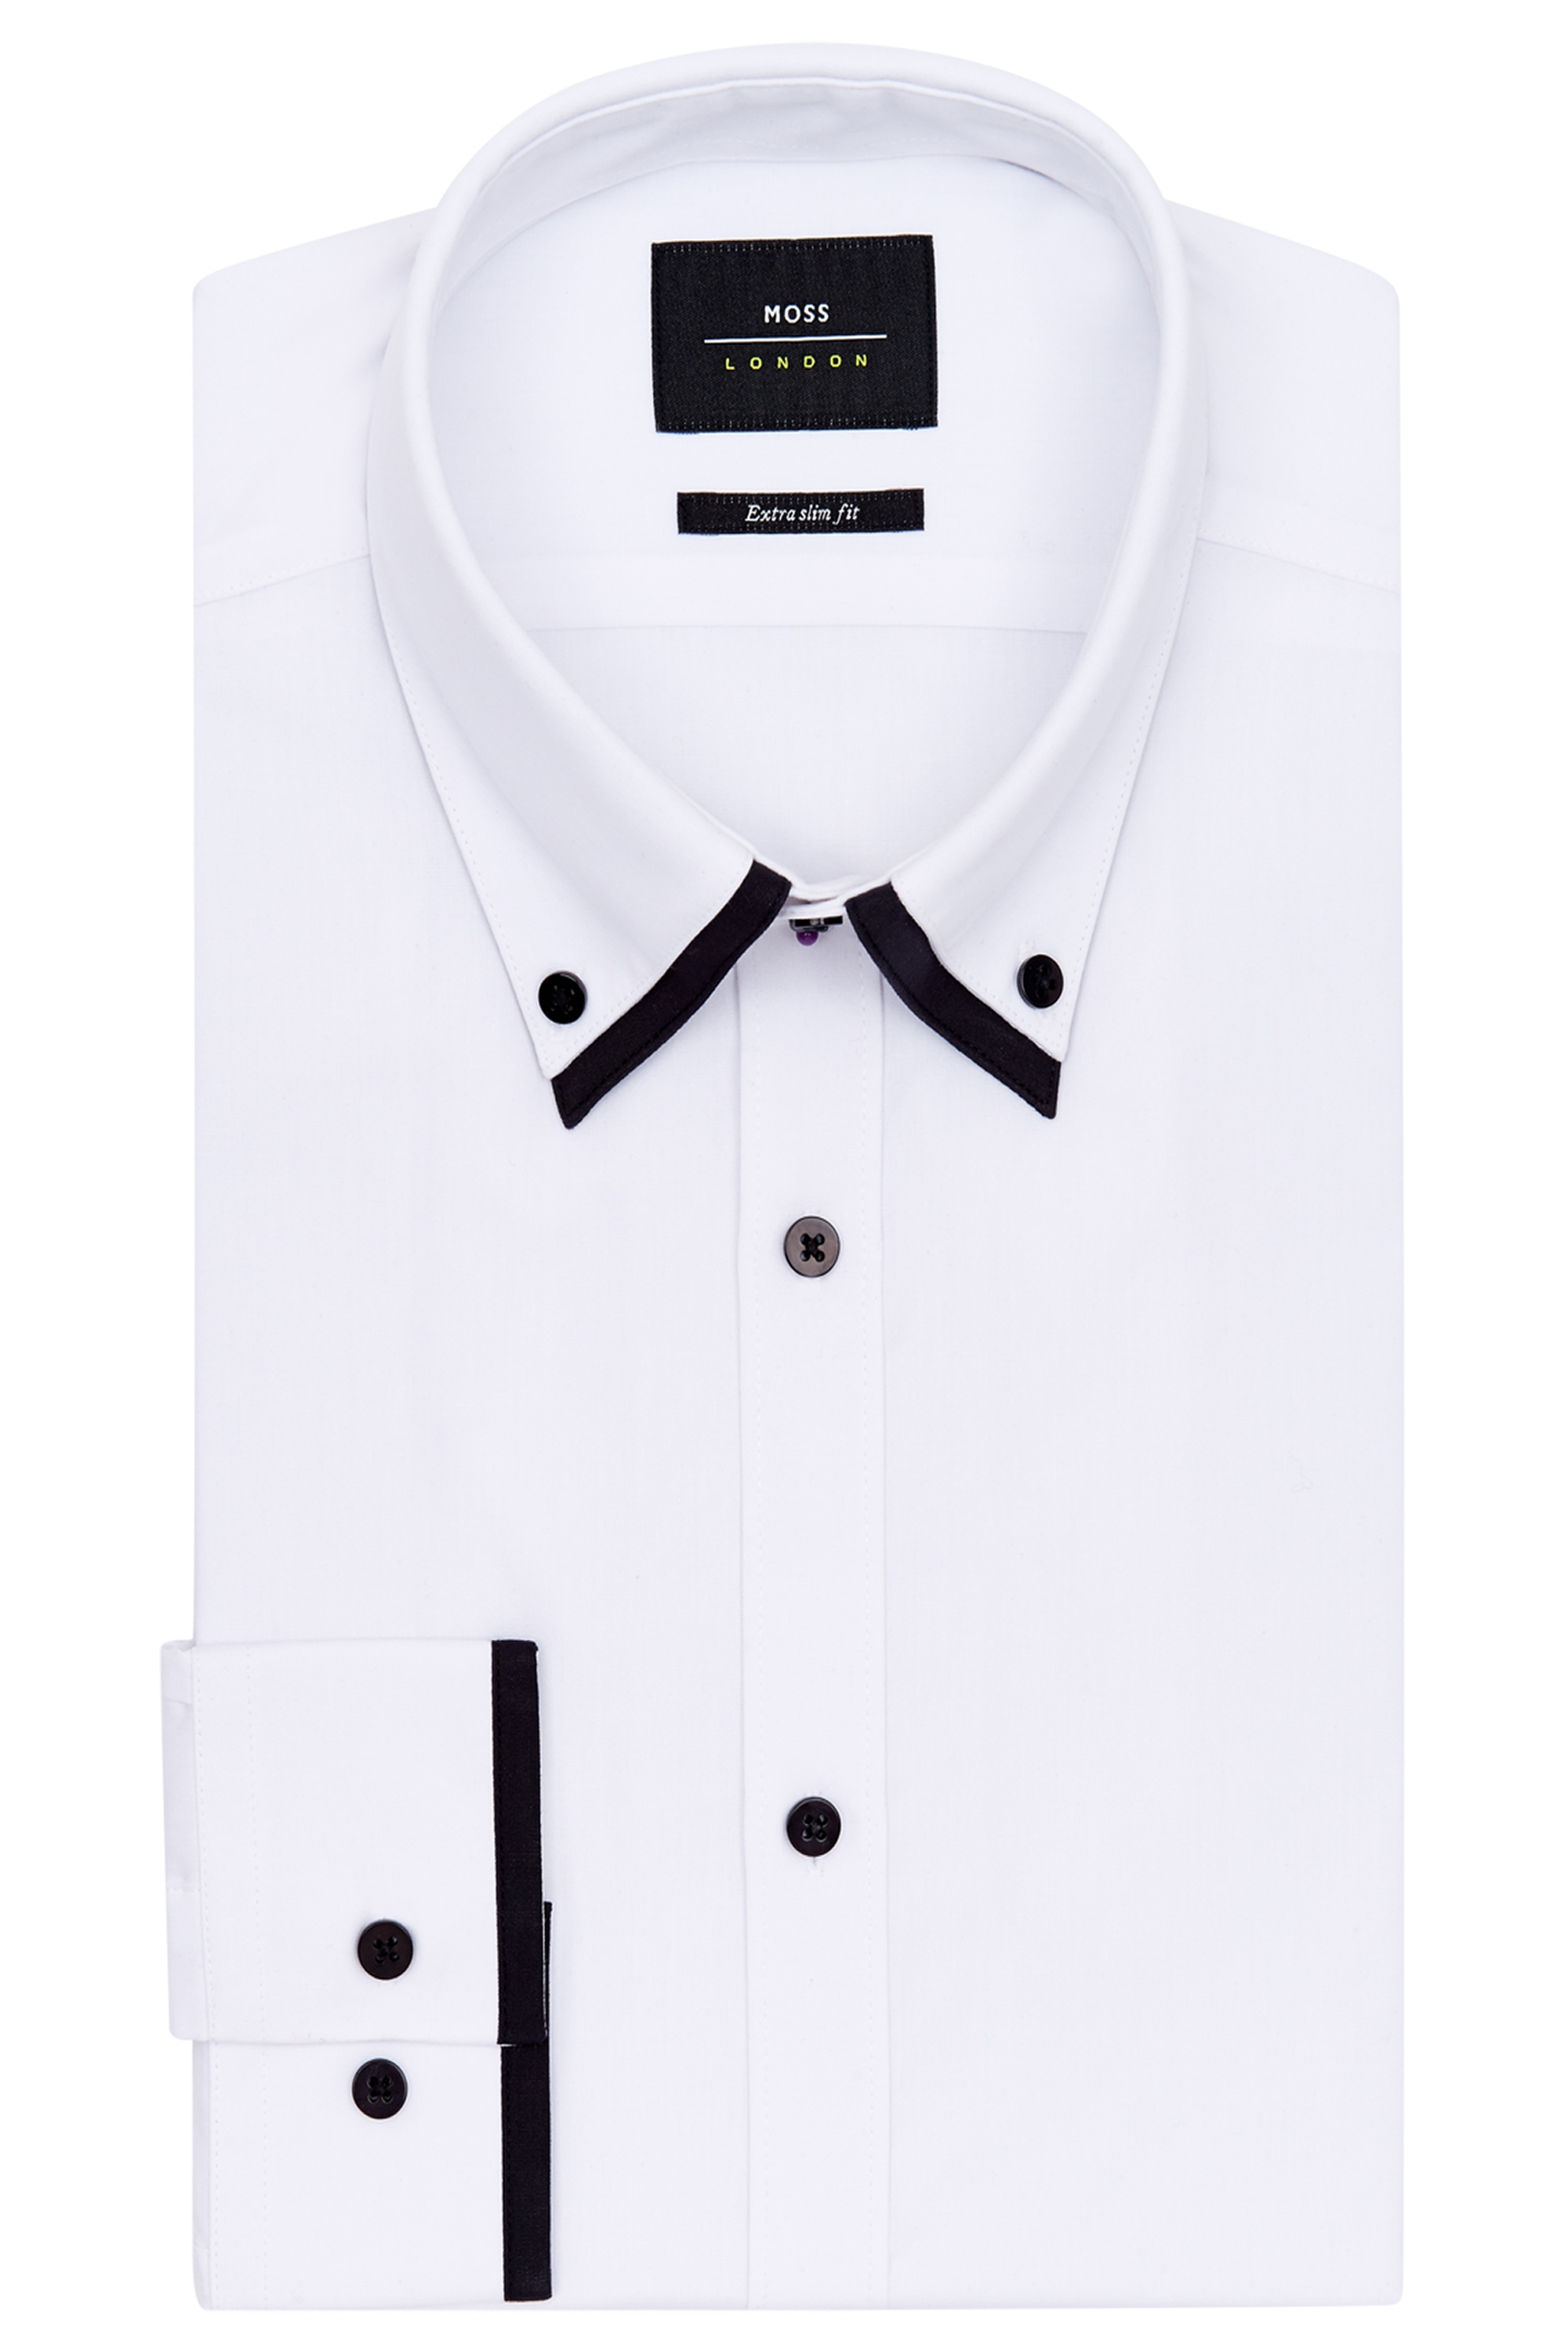 Moss London Mens White And Black Shirt Slim Fit Double